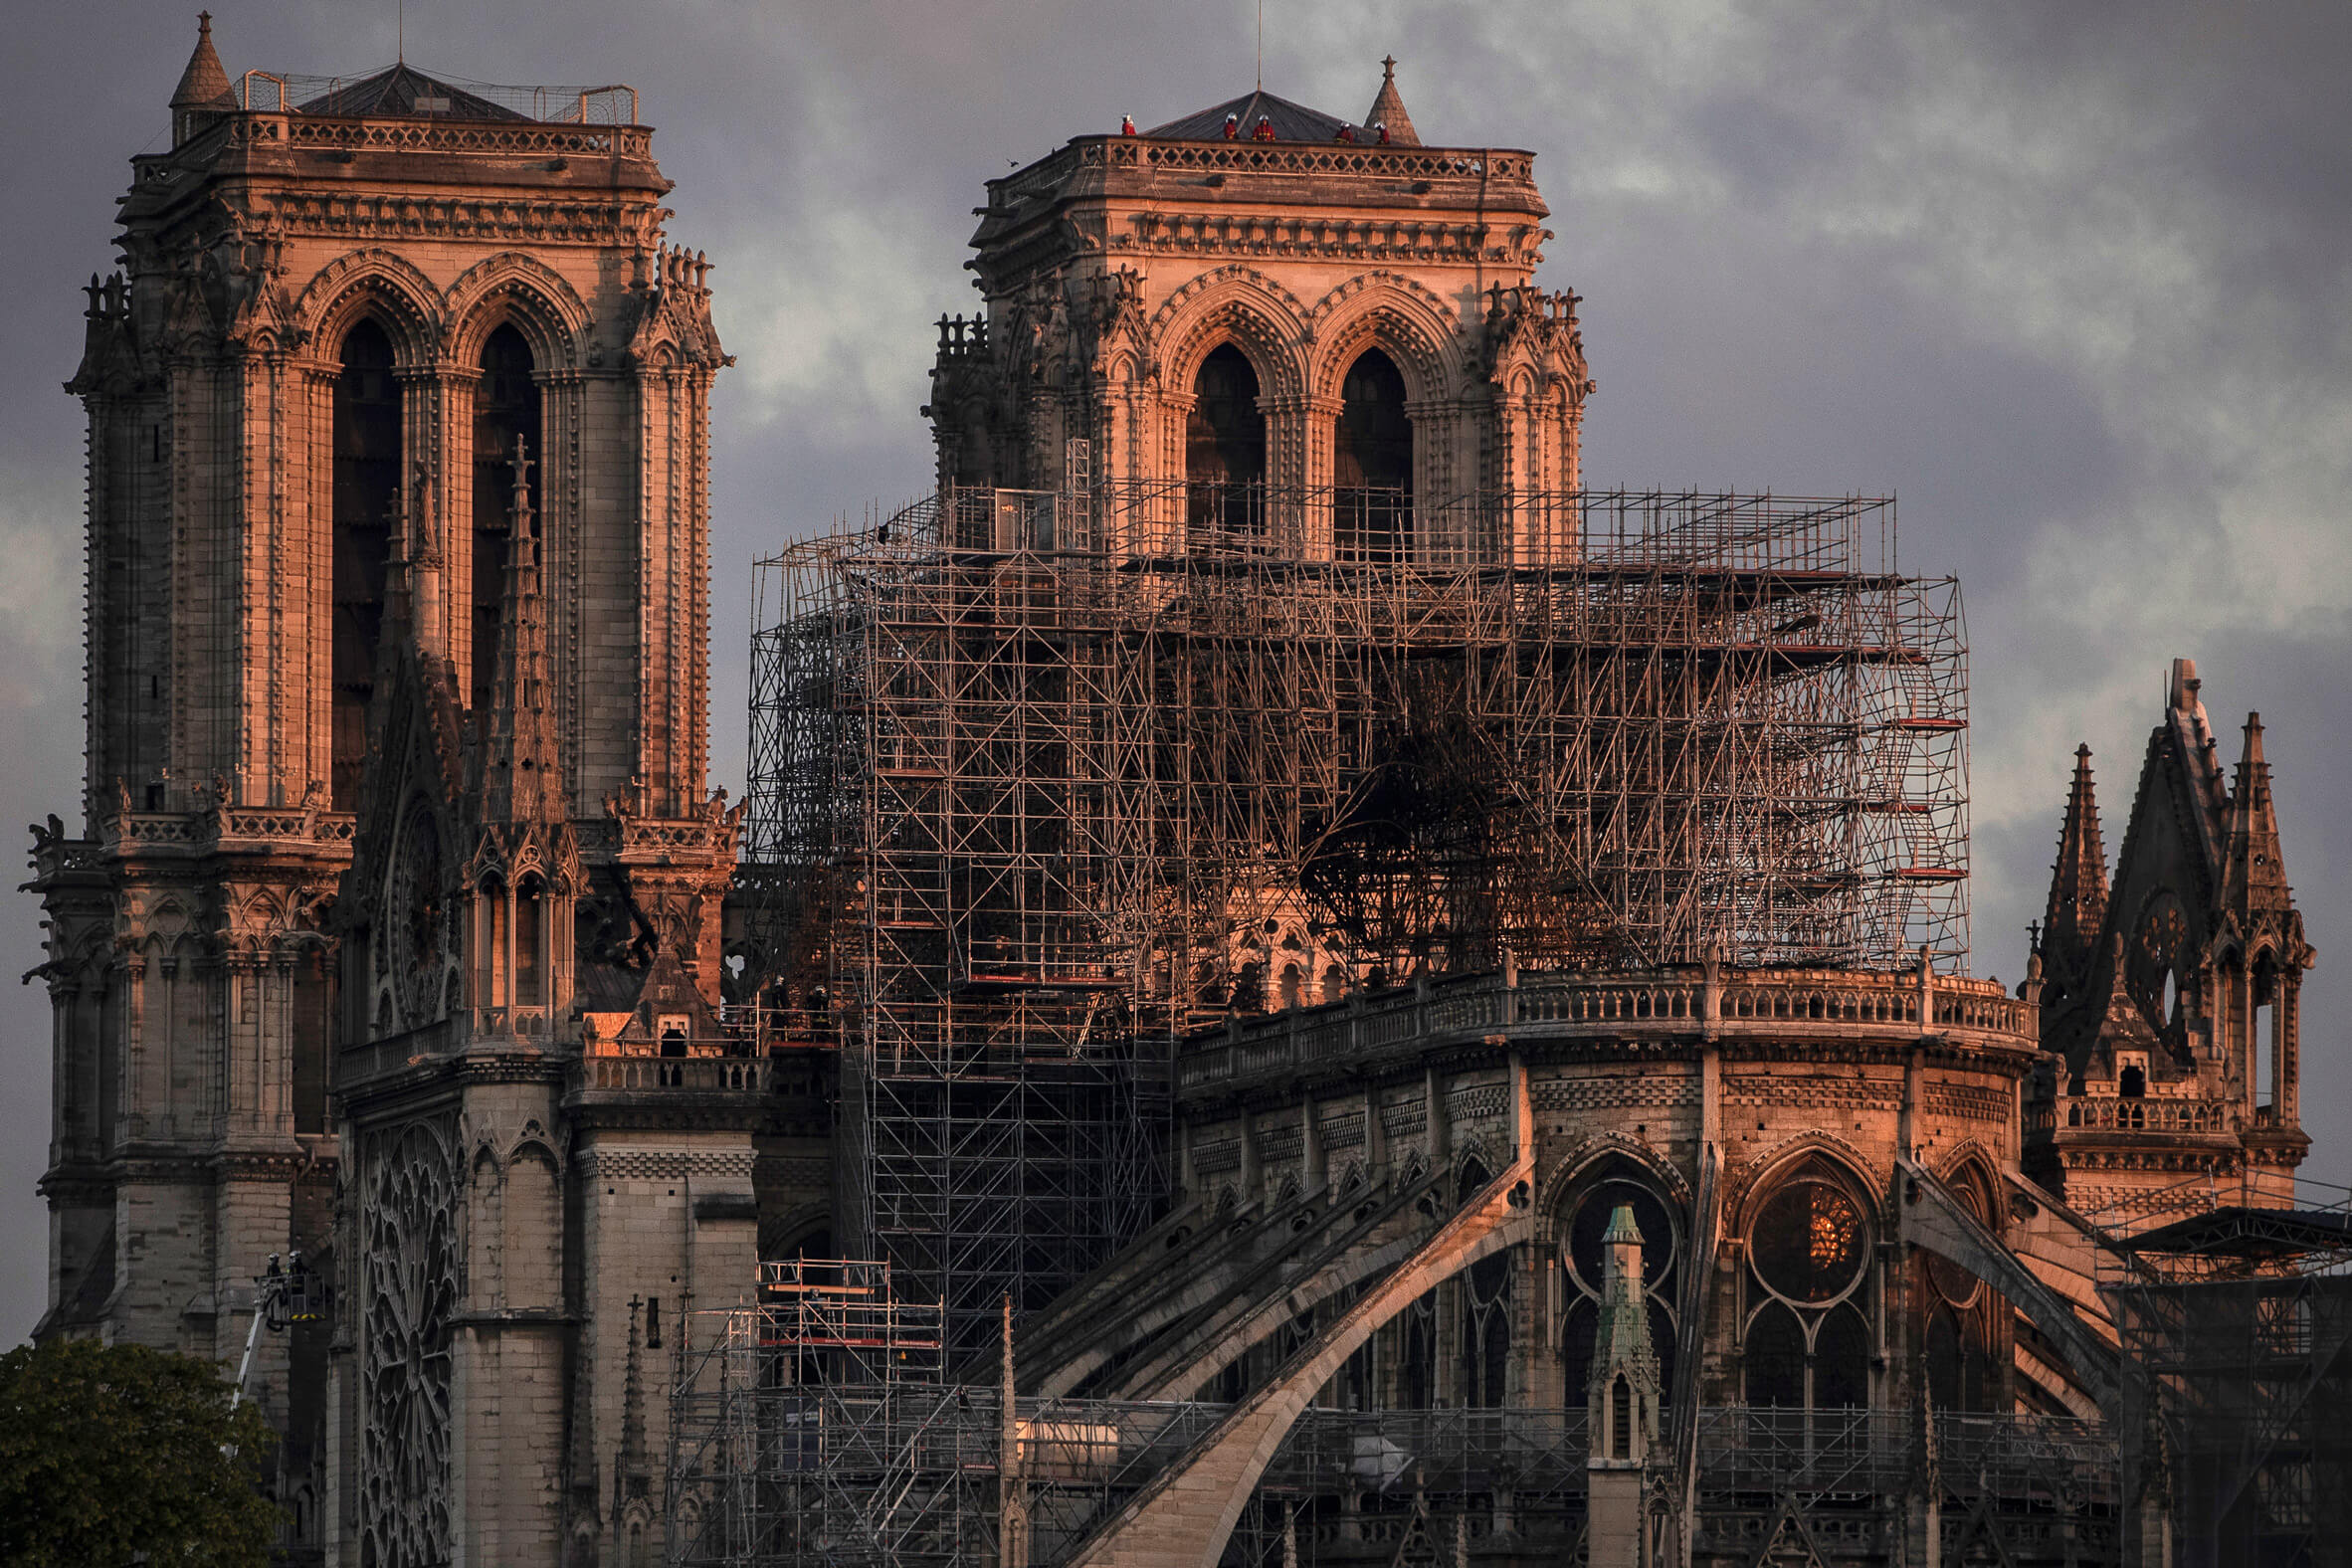 notre-dame-cathedral-paris-after-fire-april-2019-col